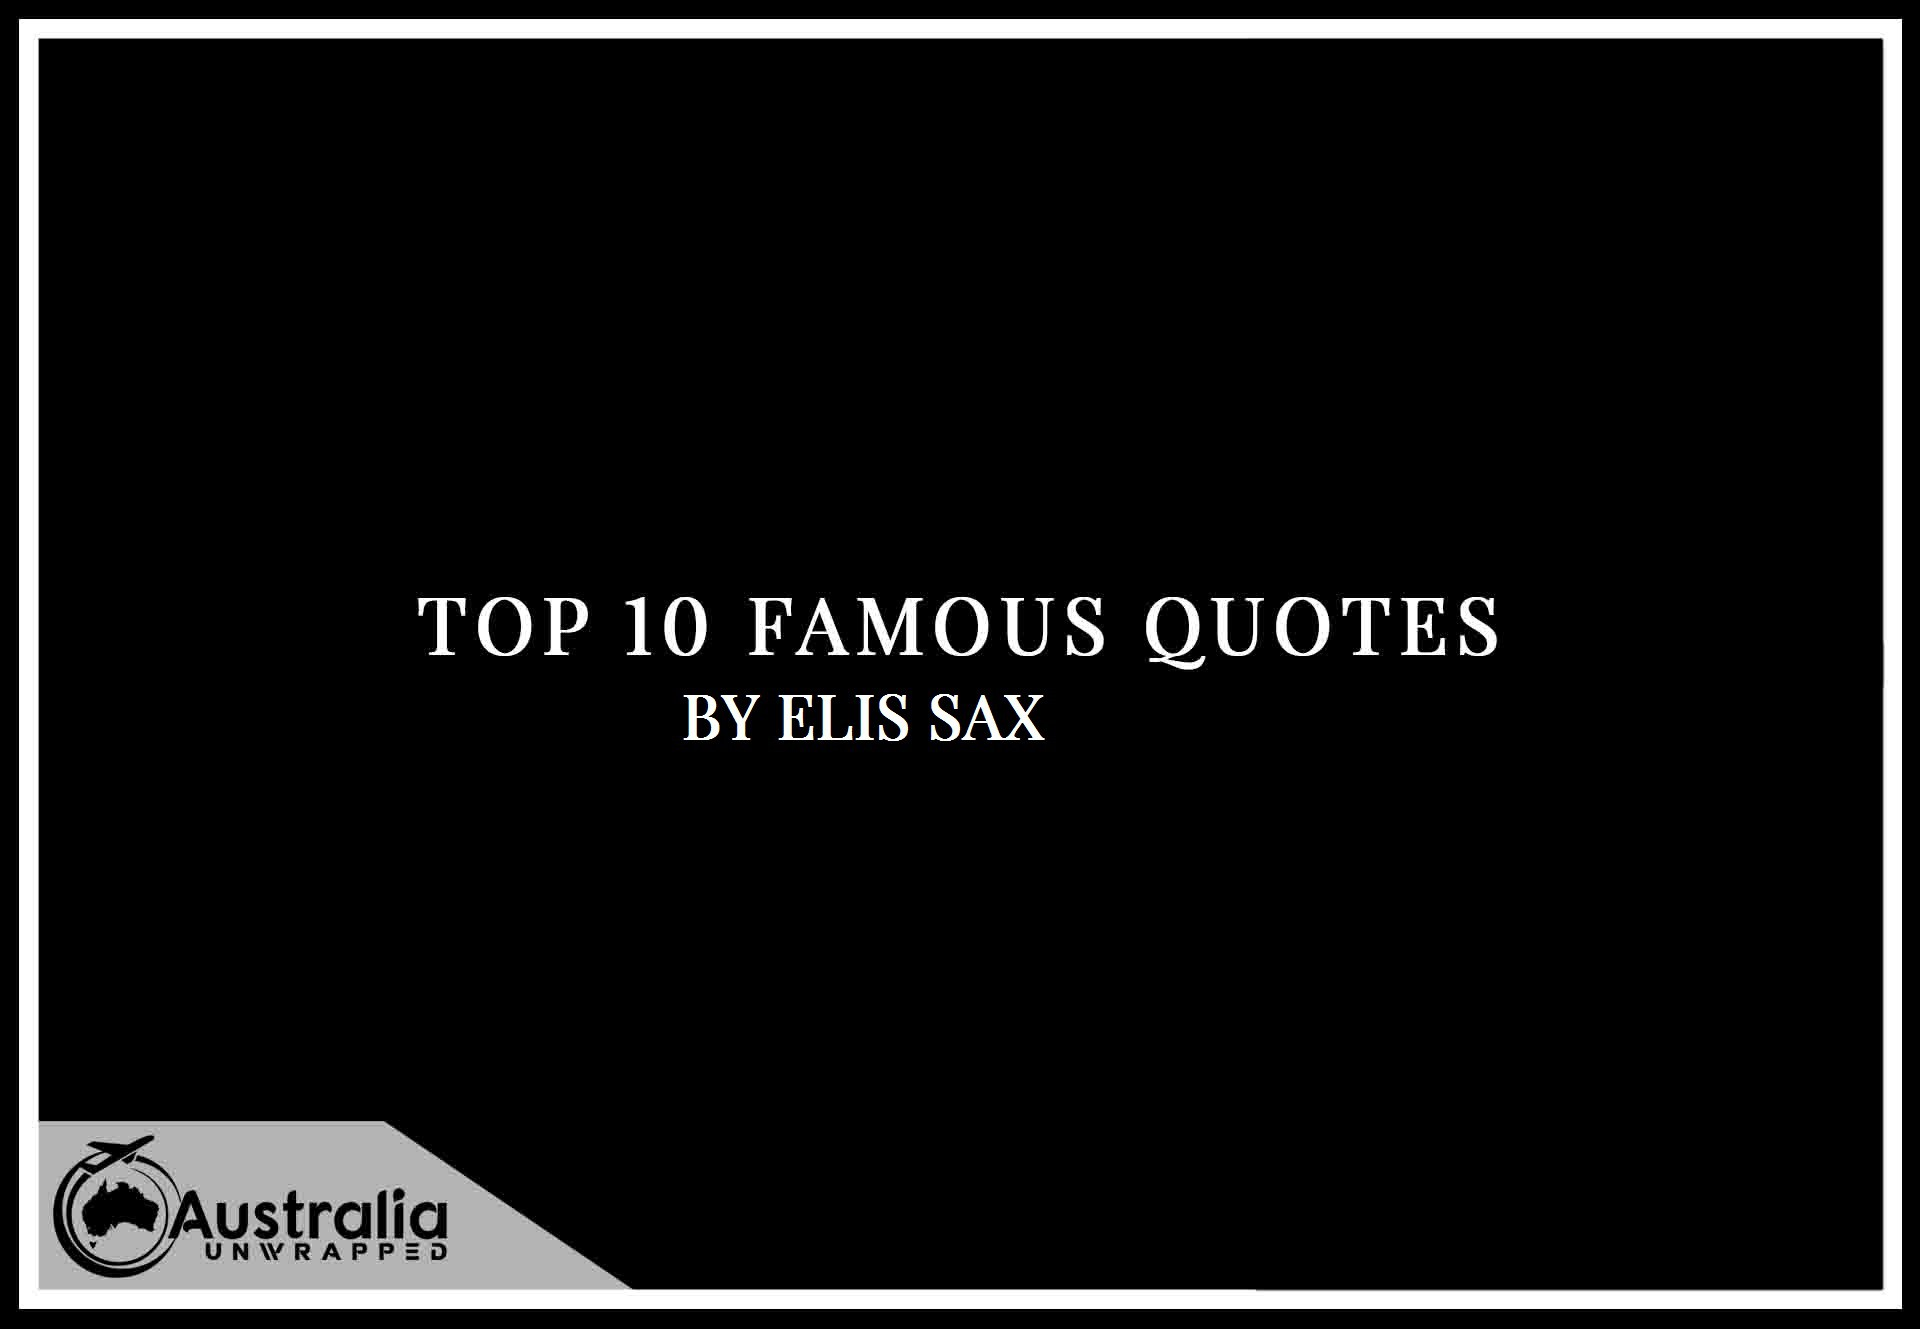 Elise Sax's Top 10 Popular and Famous Quotes